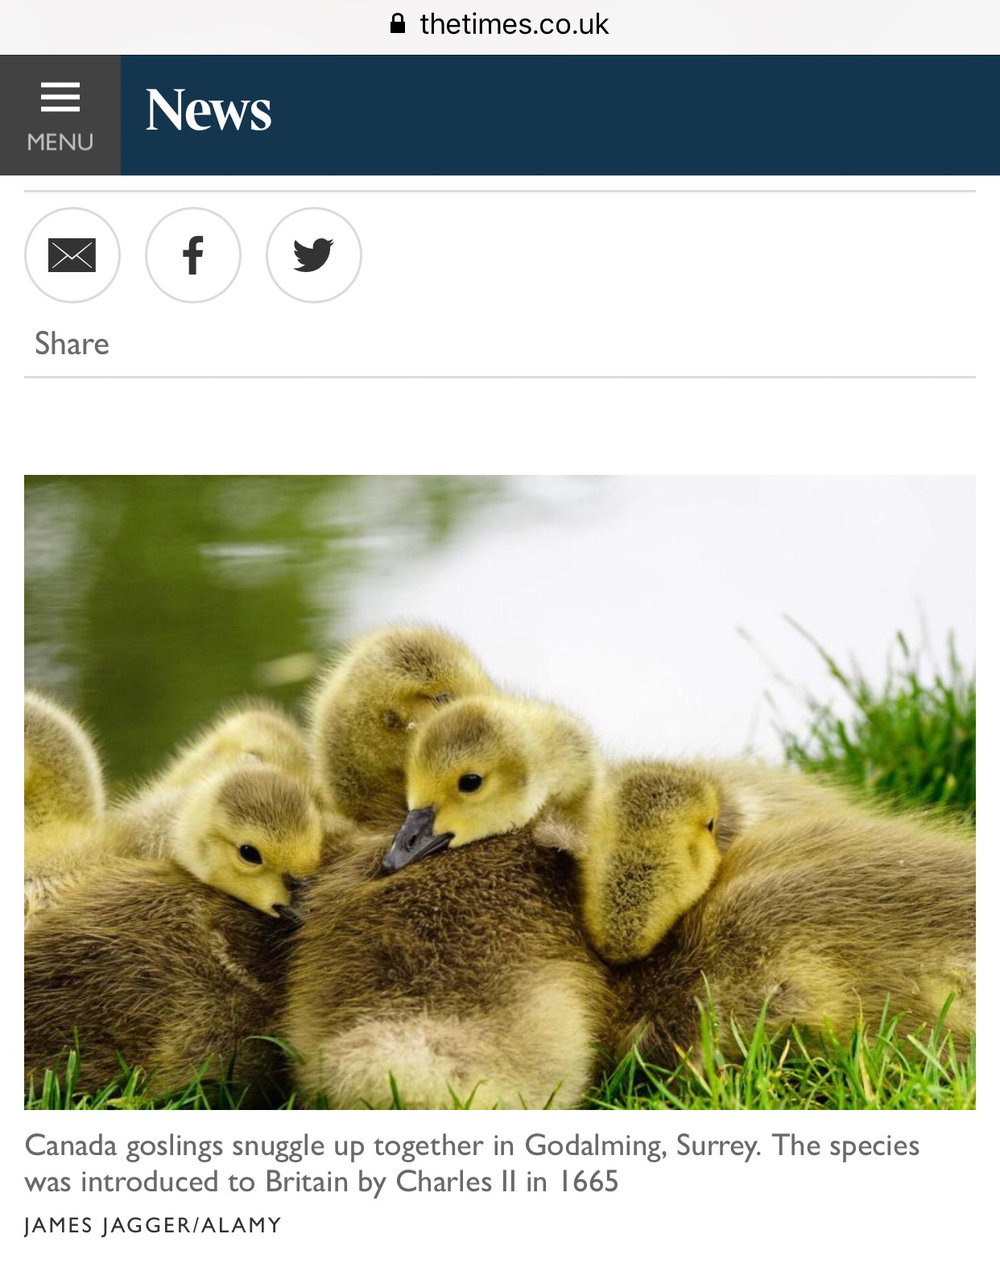 canada goslings in Godalming Surrey